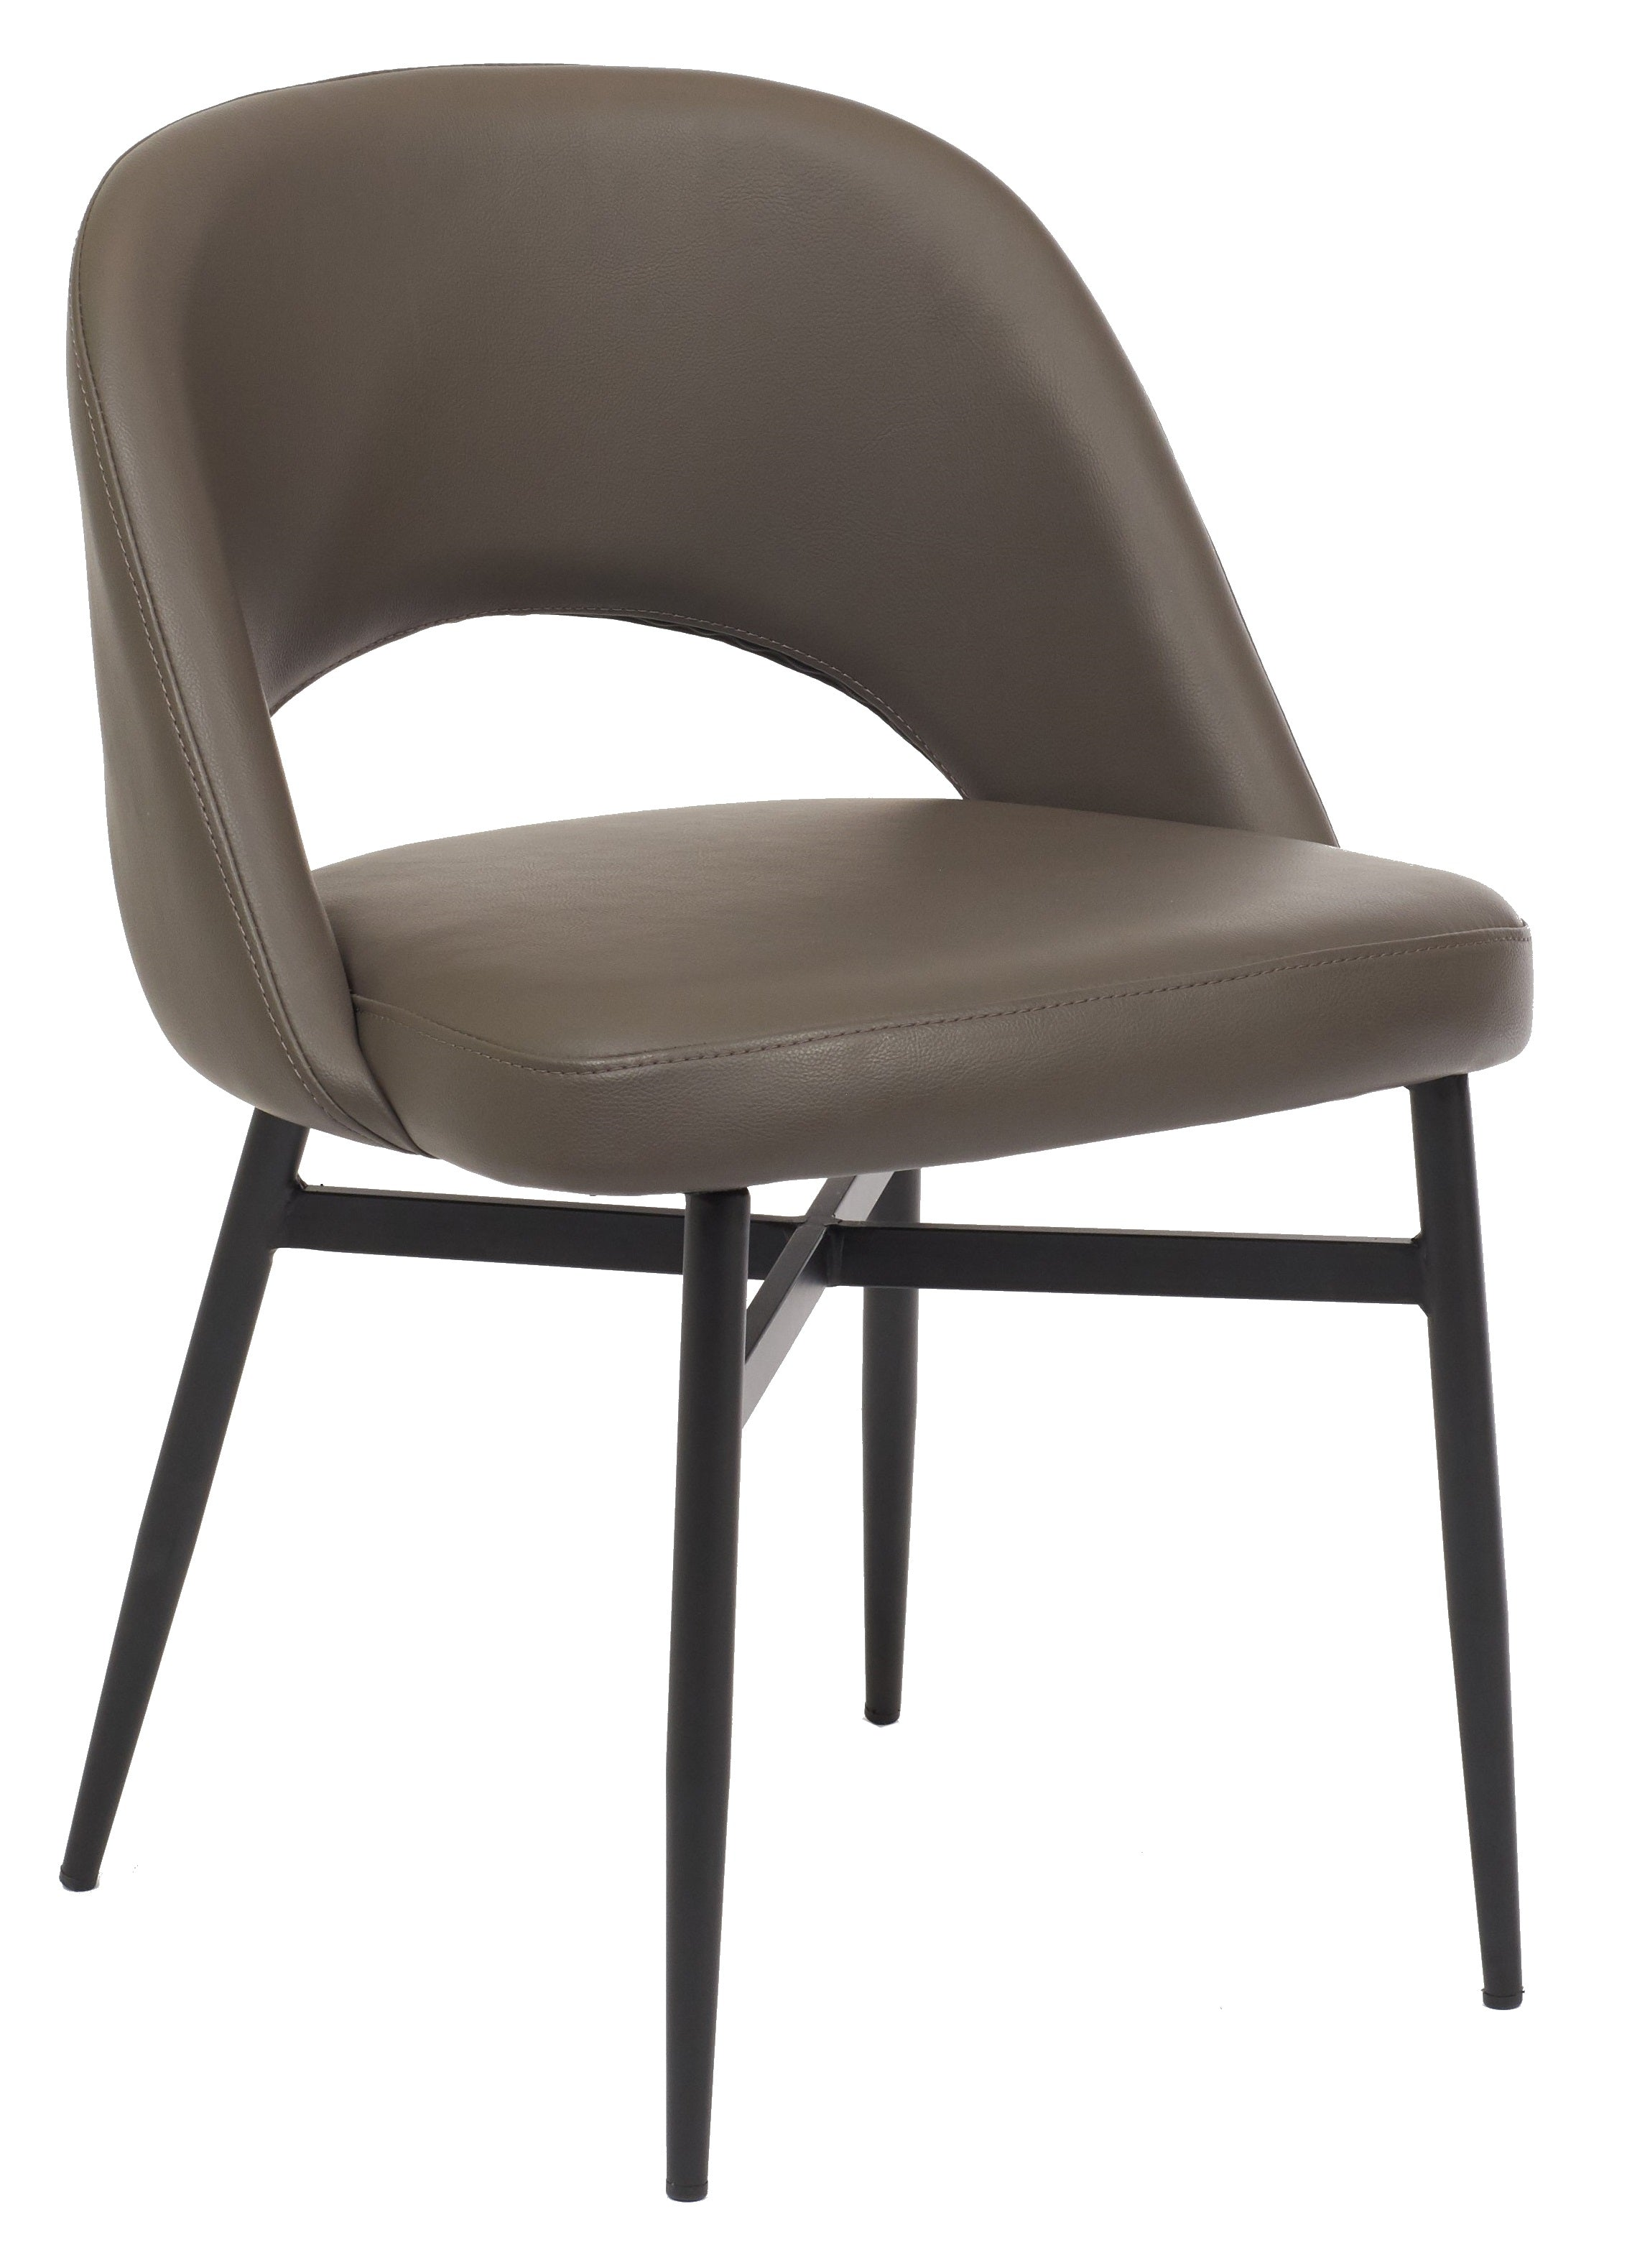 Harry Chair - Grey with Beta Black Legs